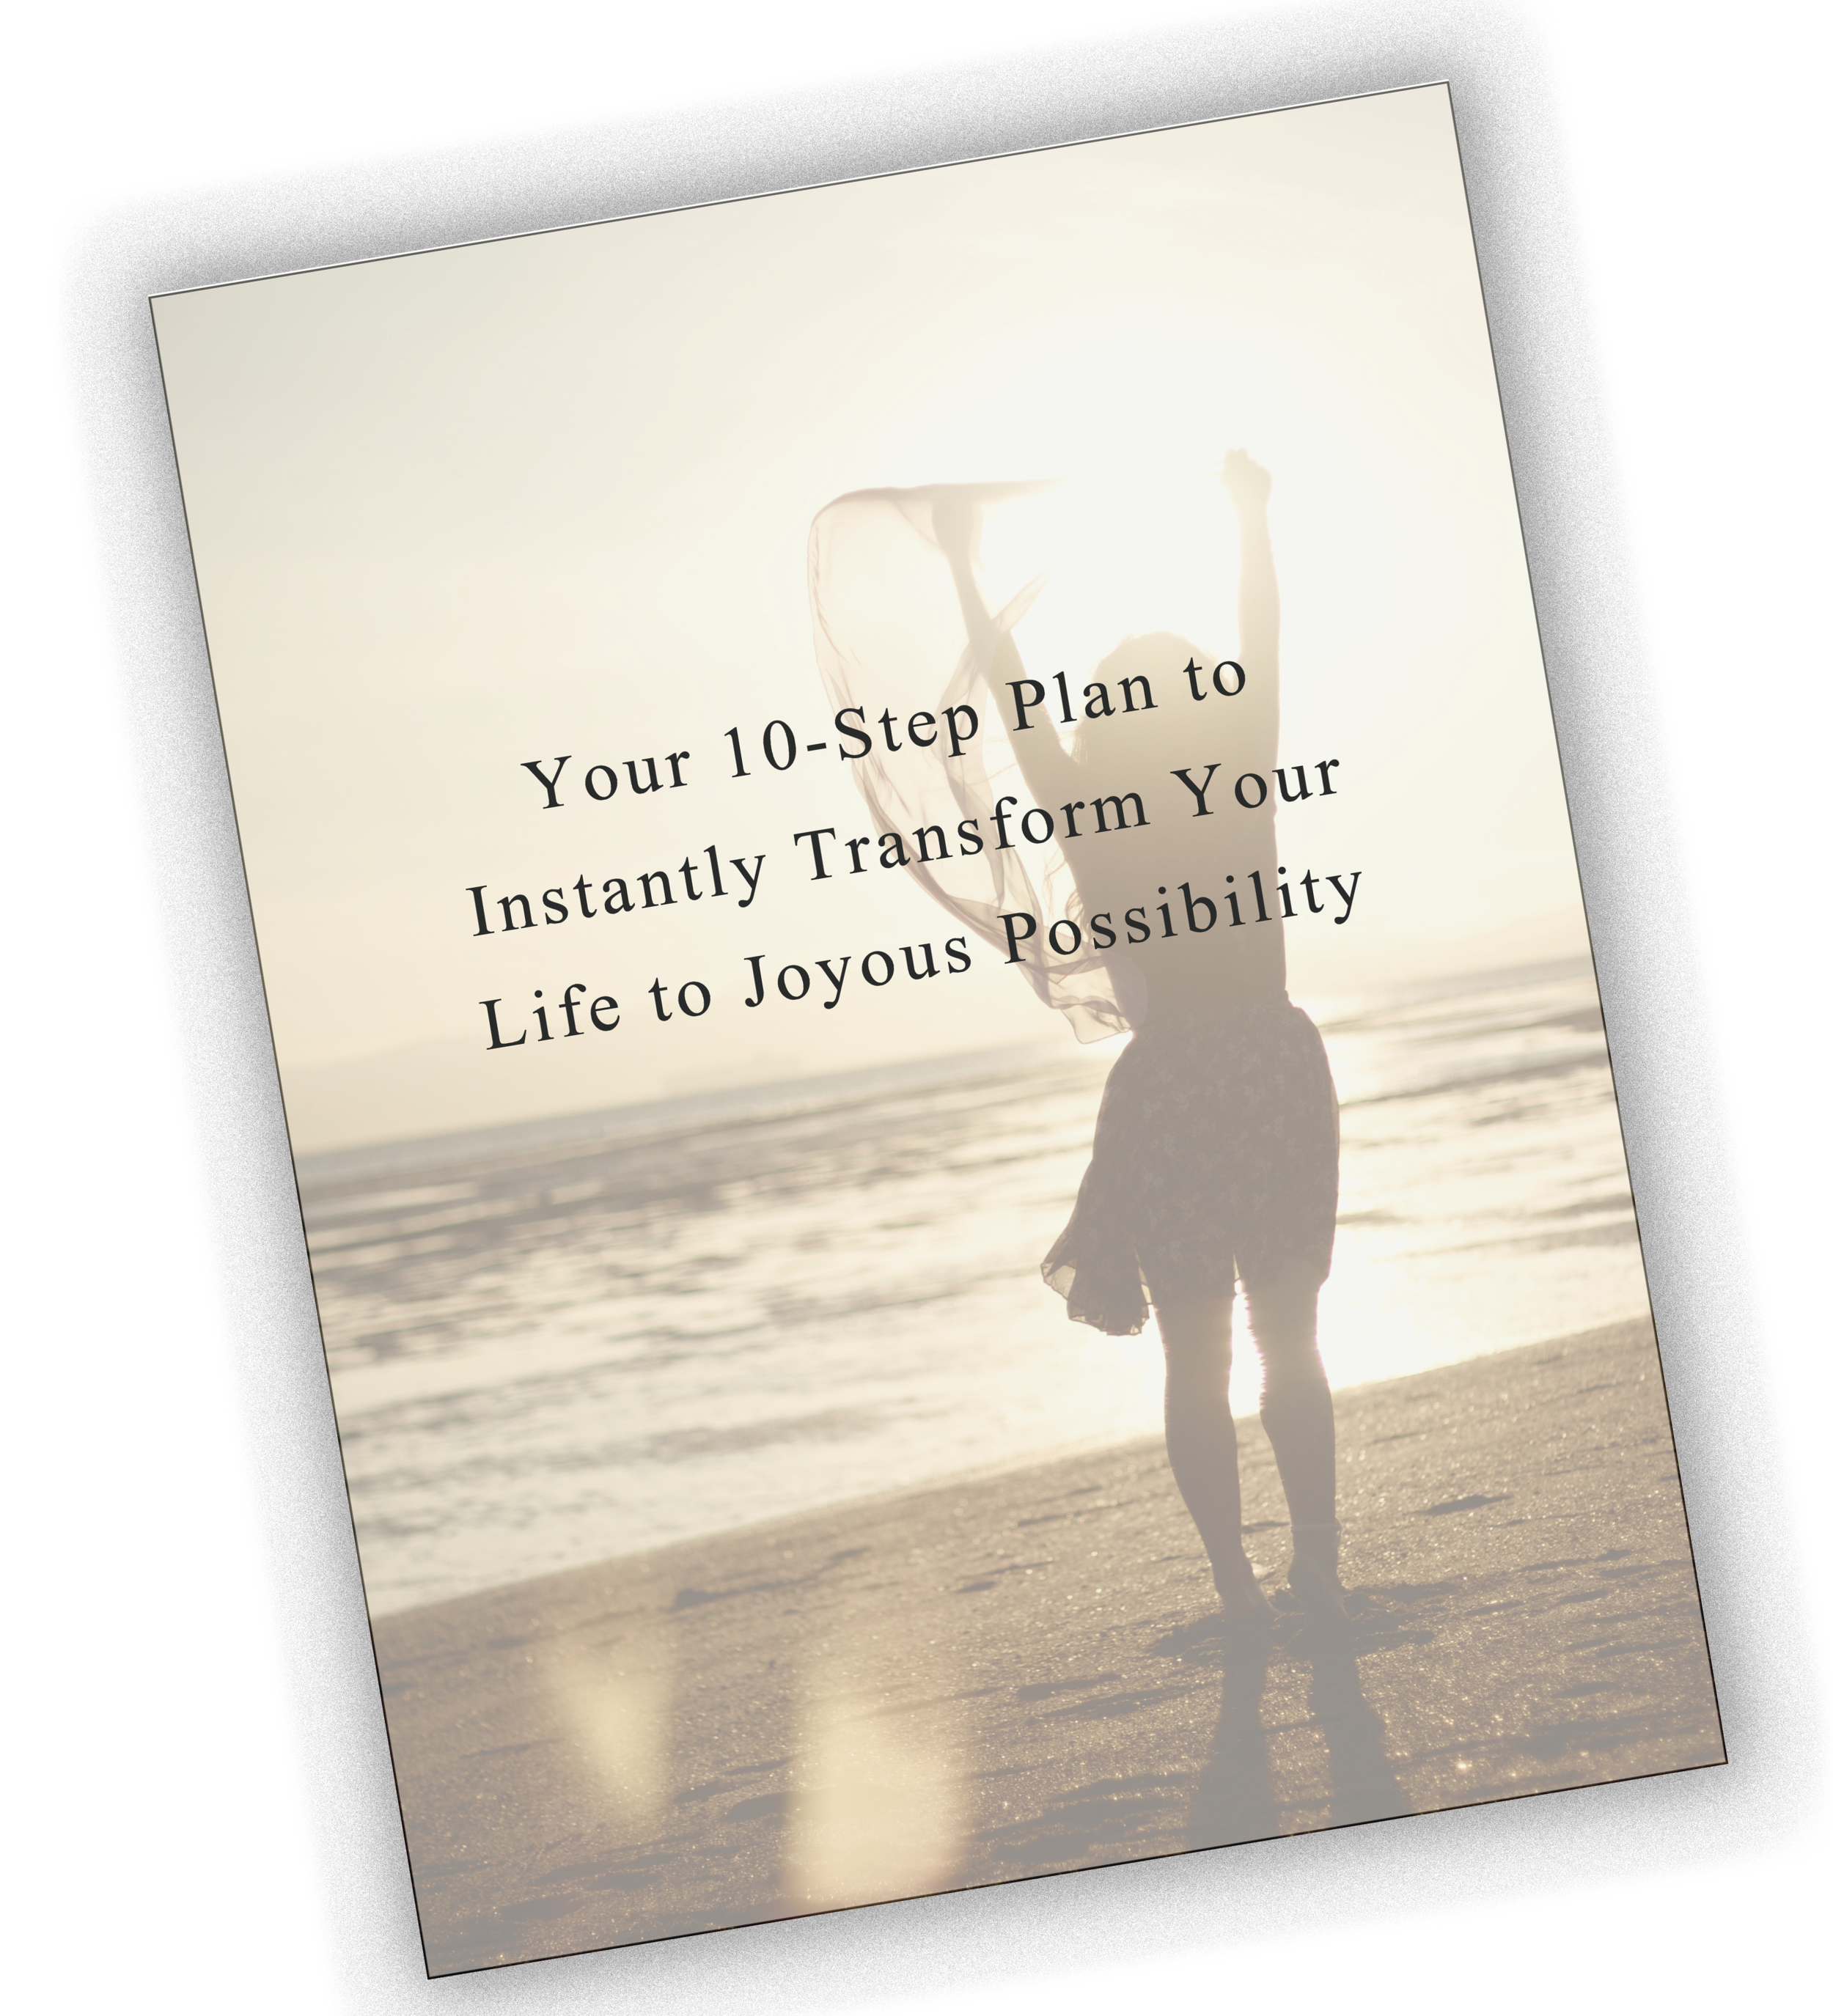 Download your FREE 10 – Step Plan to Instantly Transform Your Life to Joyous Possibility - This is your place to get sound, practical tools, support, advice and ideas that will transform yourrelationships, health, and finances after your separation and divorce.Life can sometimes be very scary and lonely business. You can build your life. One of such abundance, possibility, love, and connection, that you would never even have believed it possible.